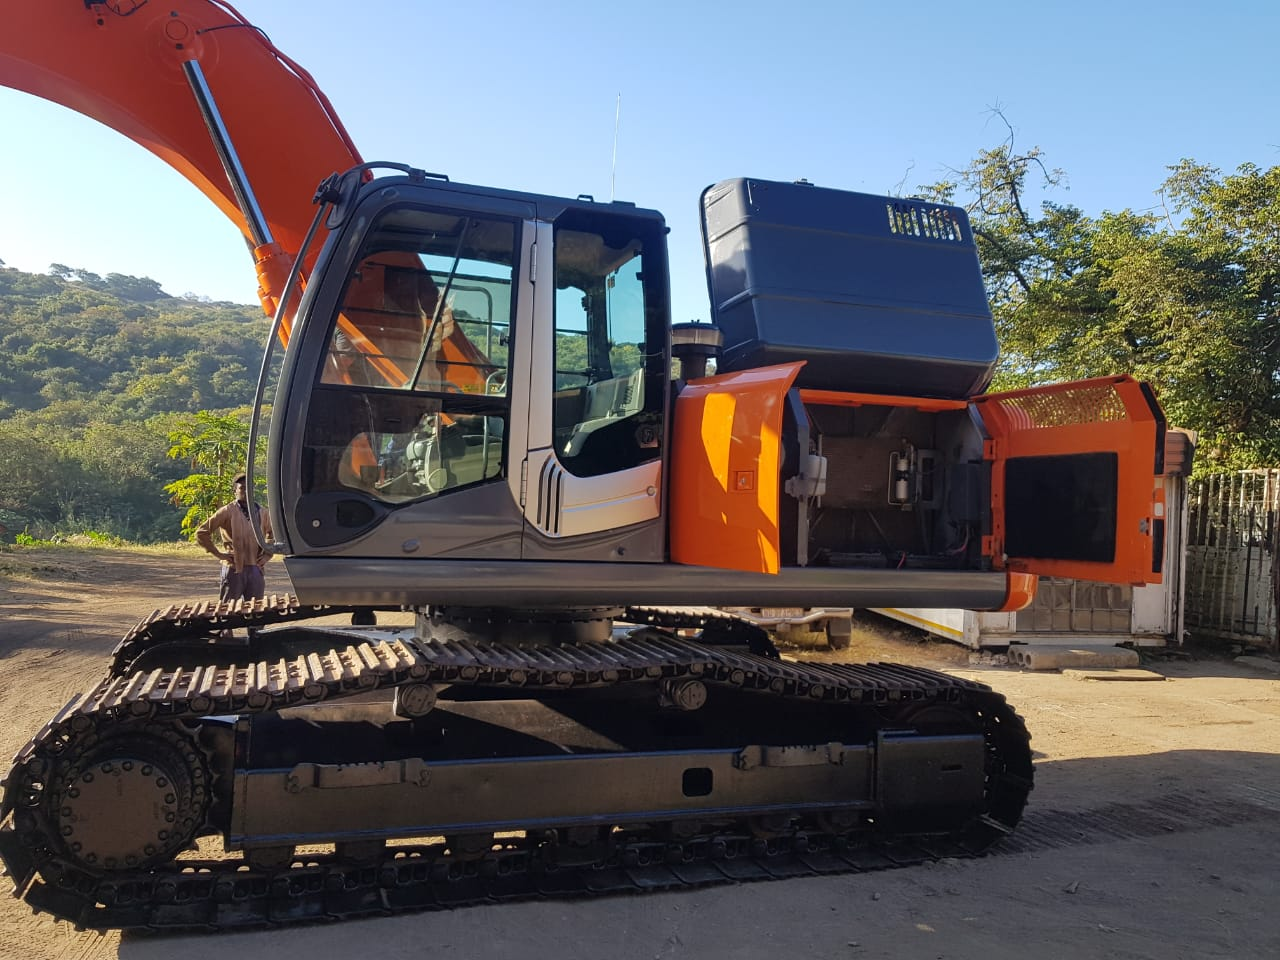 Price Drop - For Sale: Hitachi Zaxis 270 in Excellent Condition